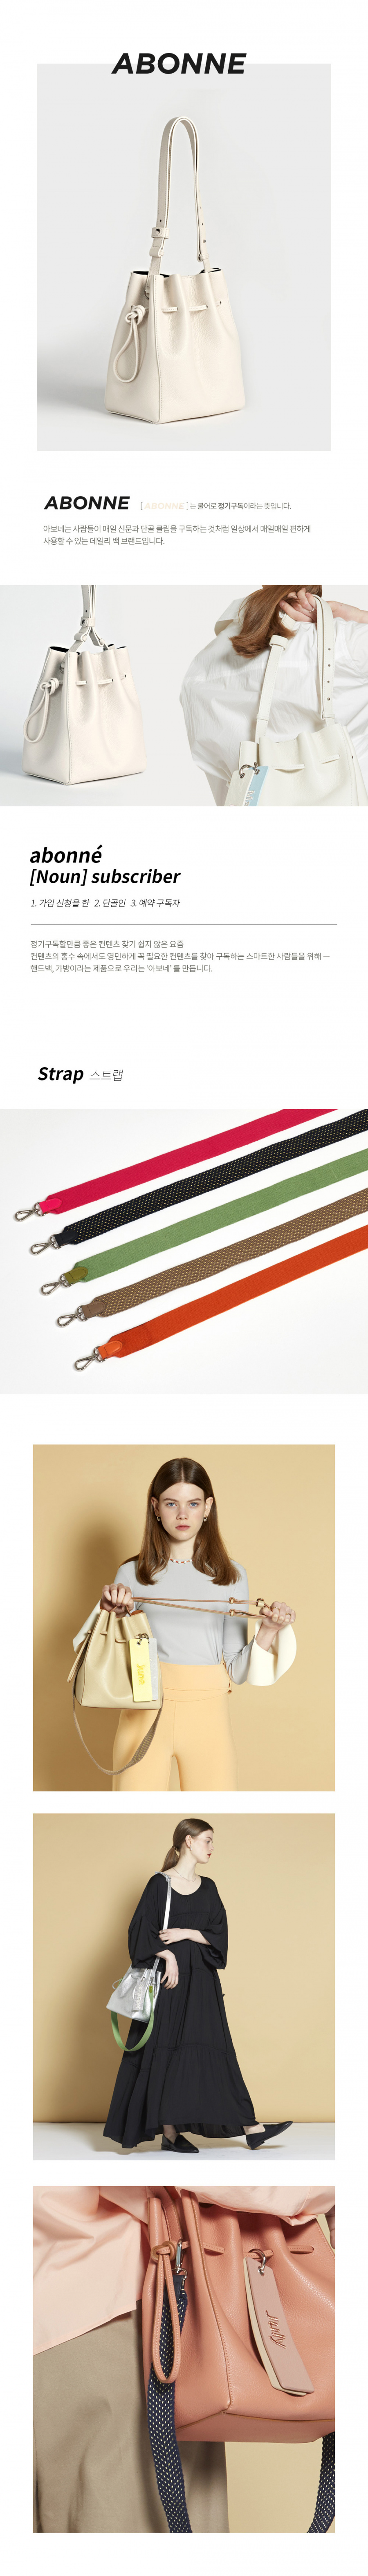 아보네(ABONNE) bag strap (5color)